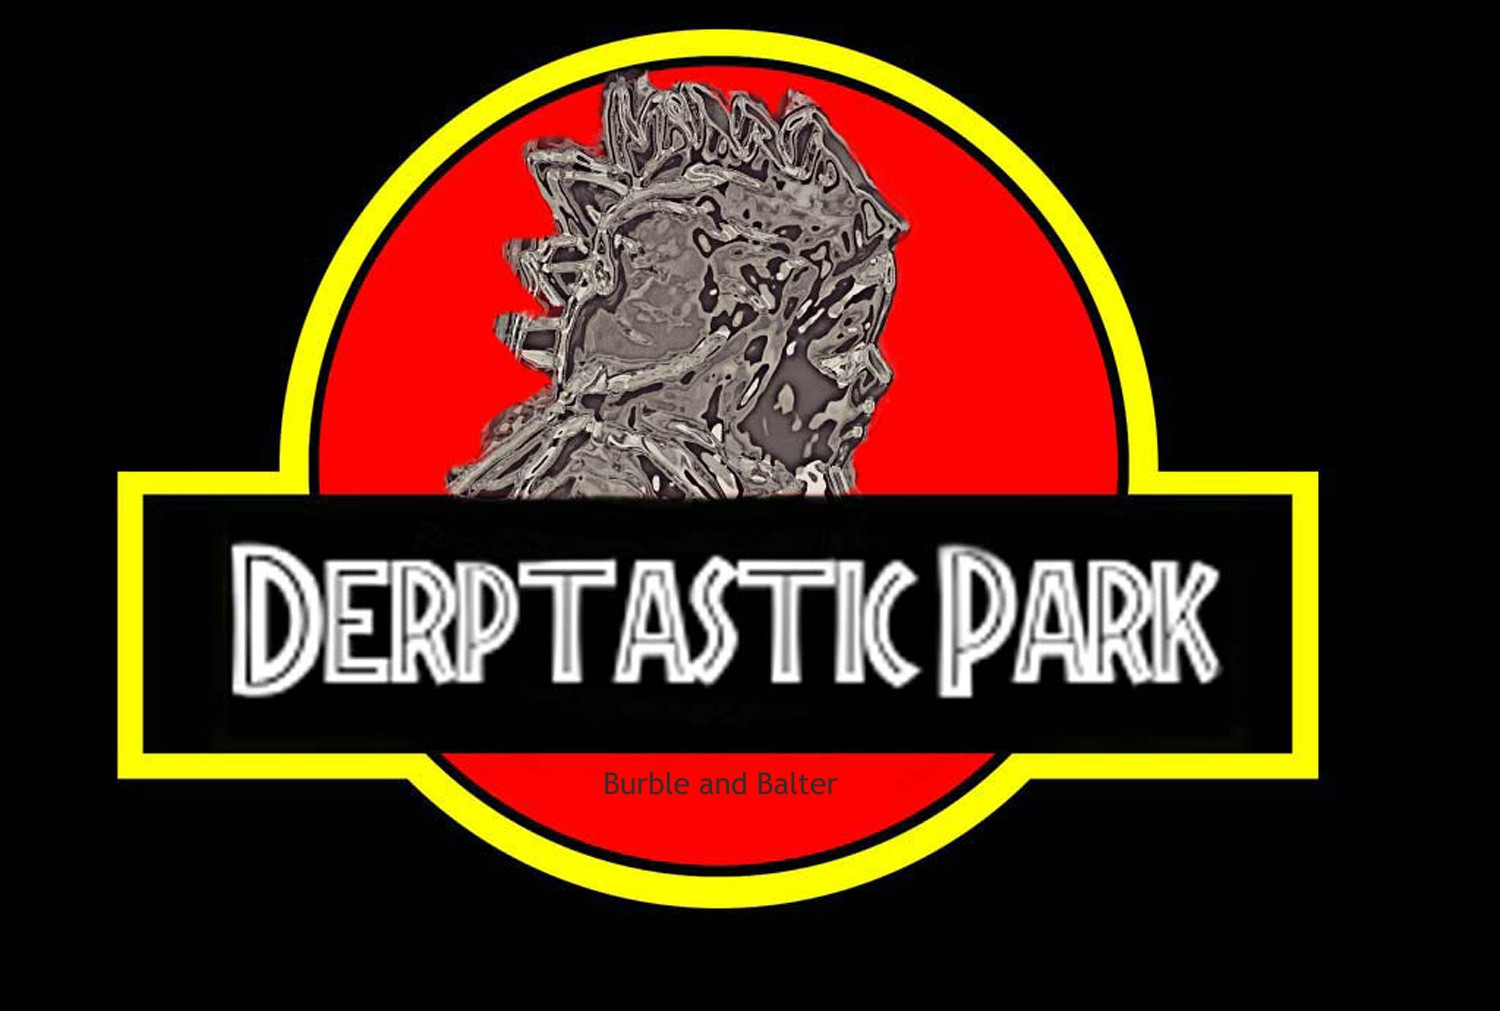 Derptastic-Park-Photo-1-Burble-and-Logo.jpg